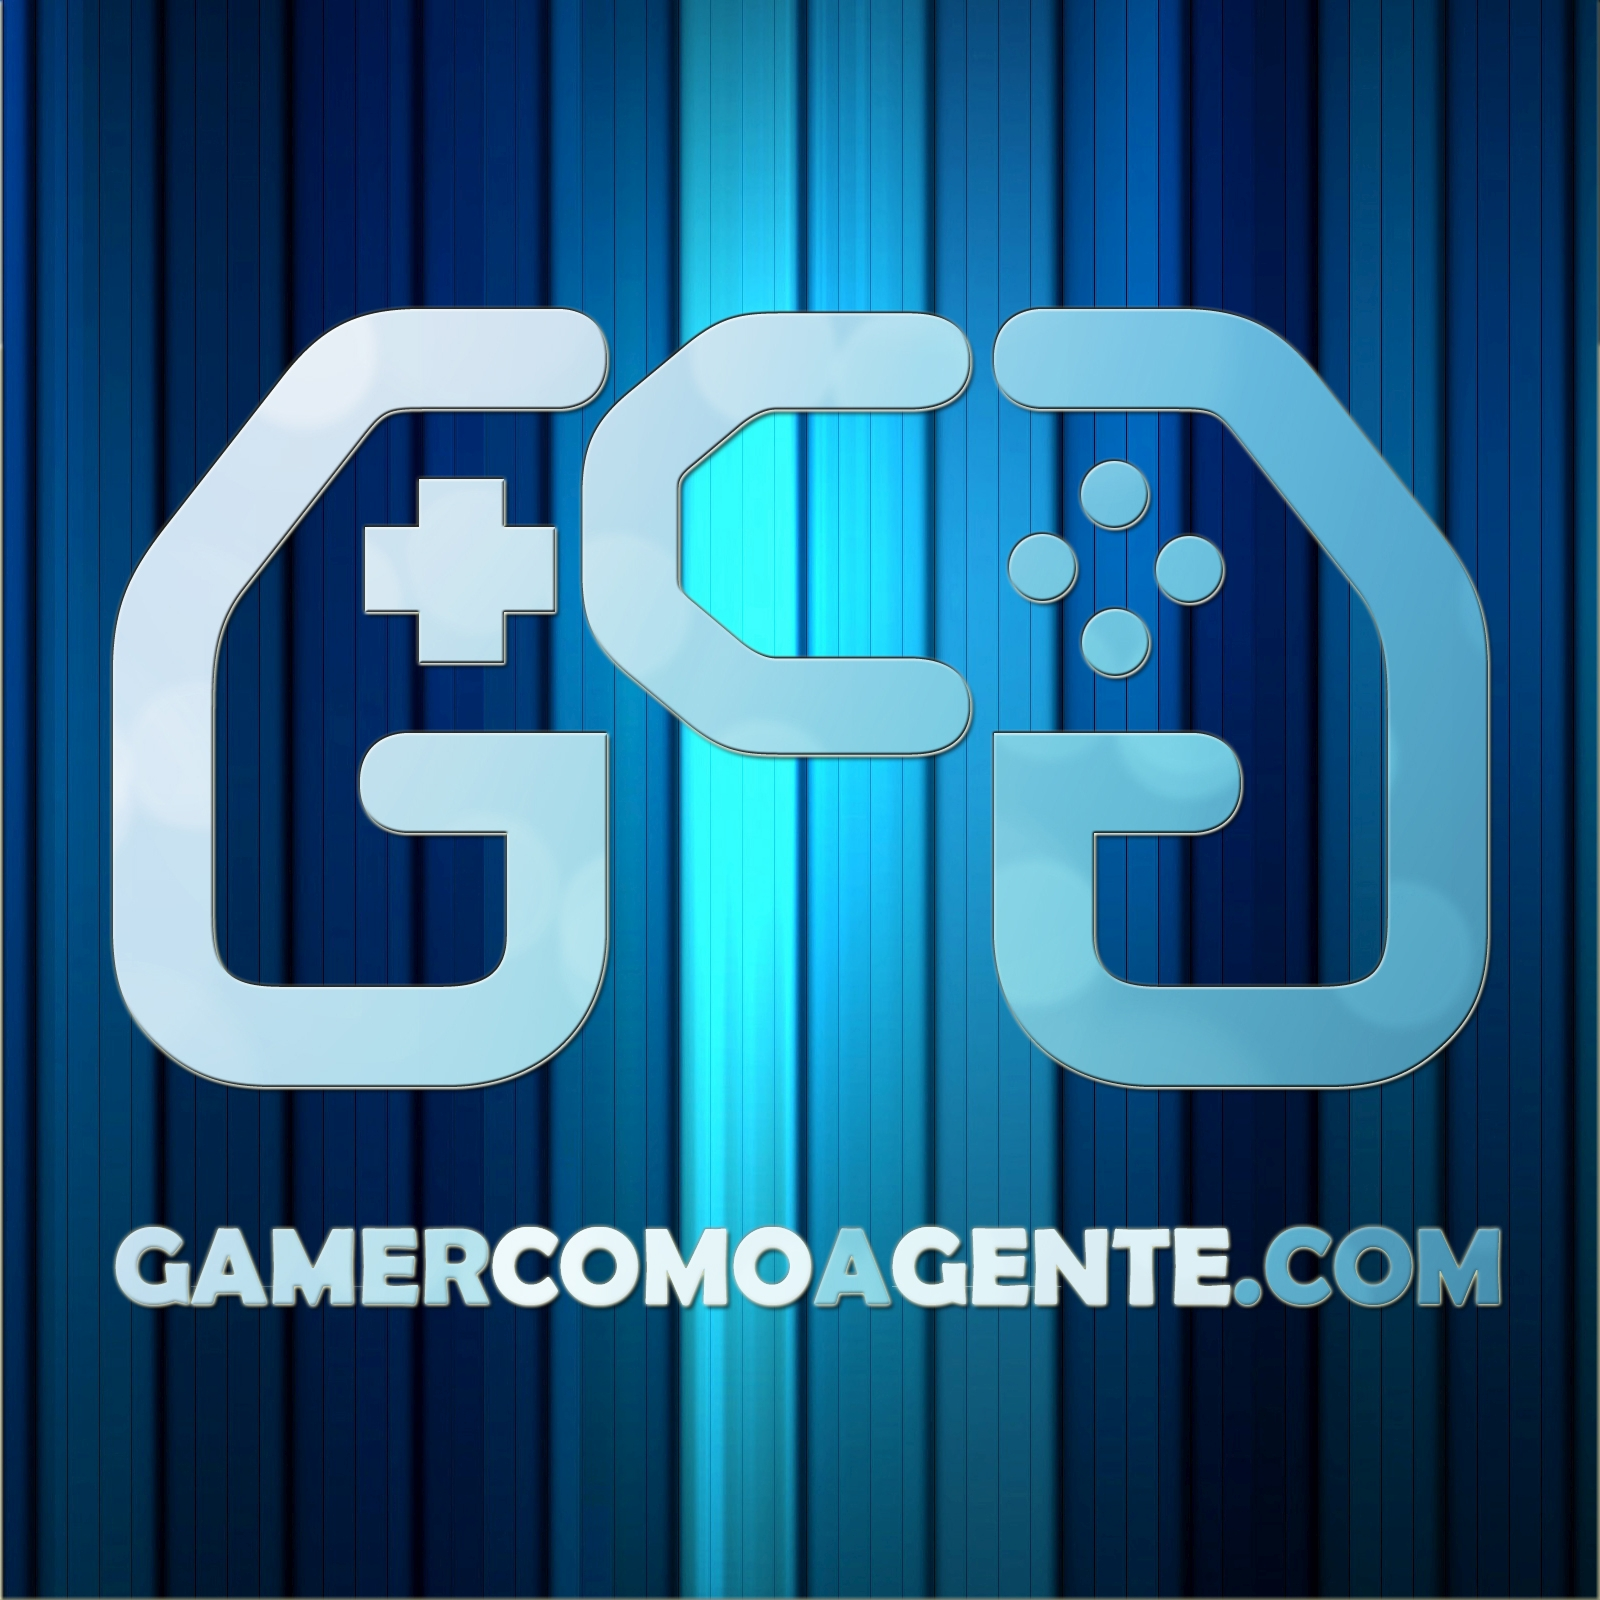 Gamer Como A Gente > > > Podcasts